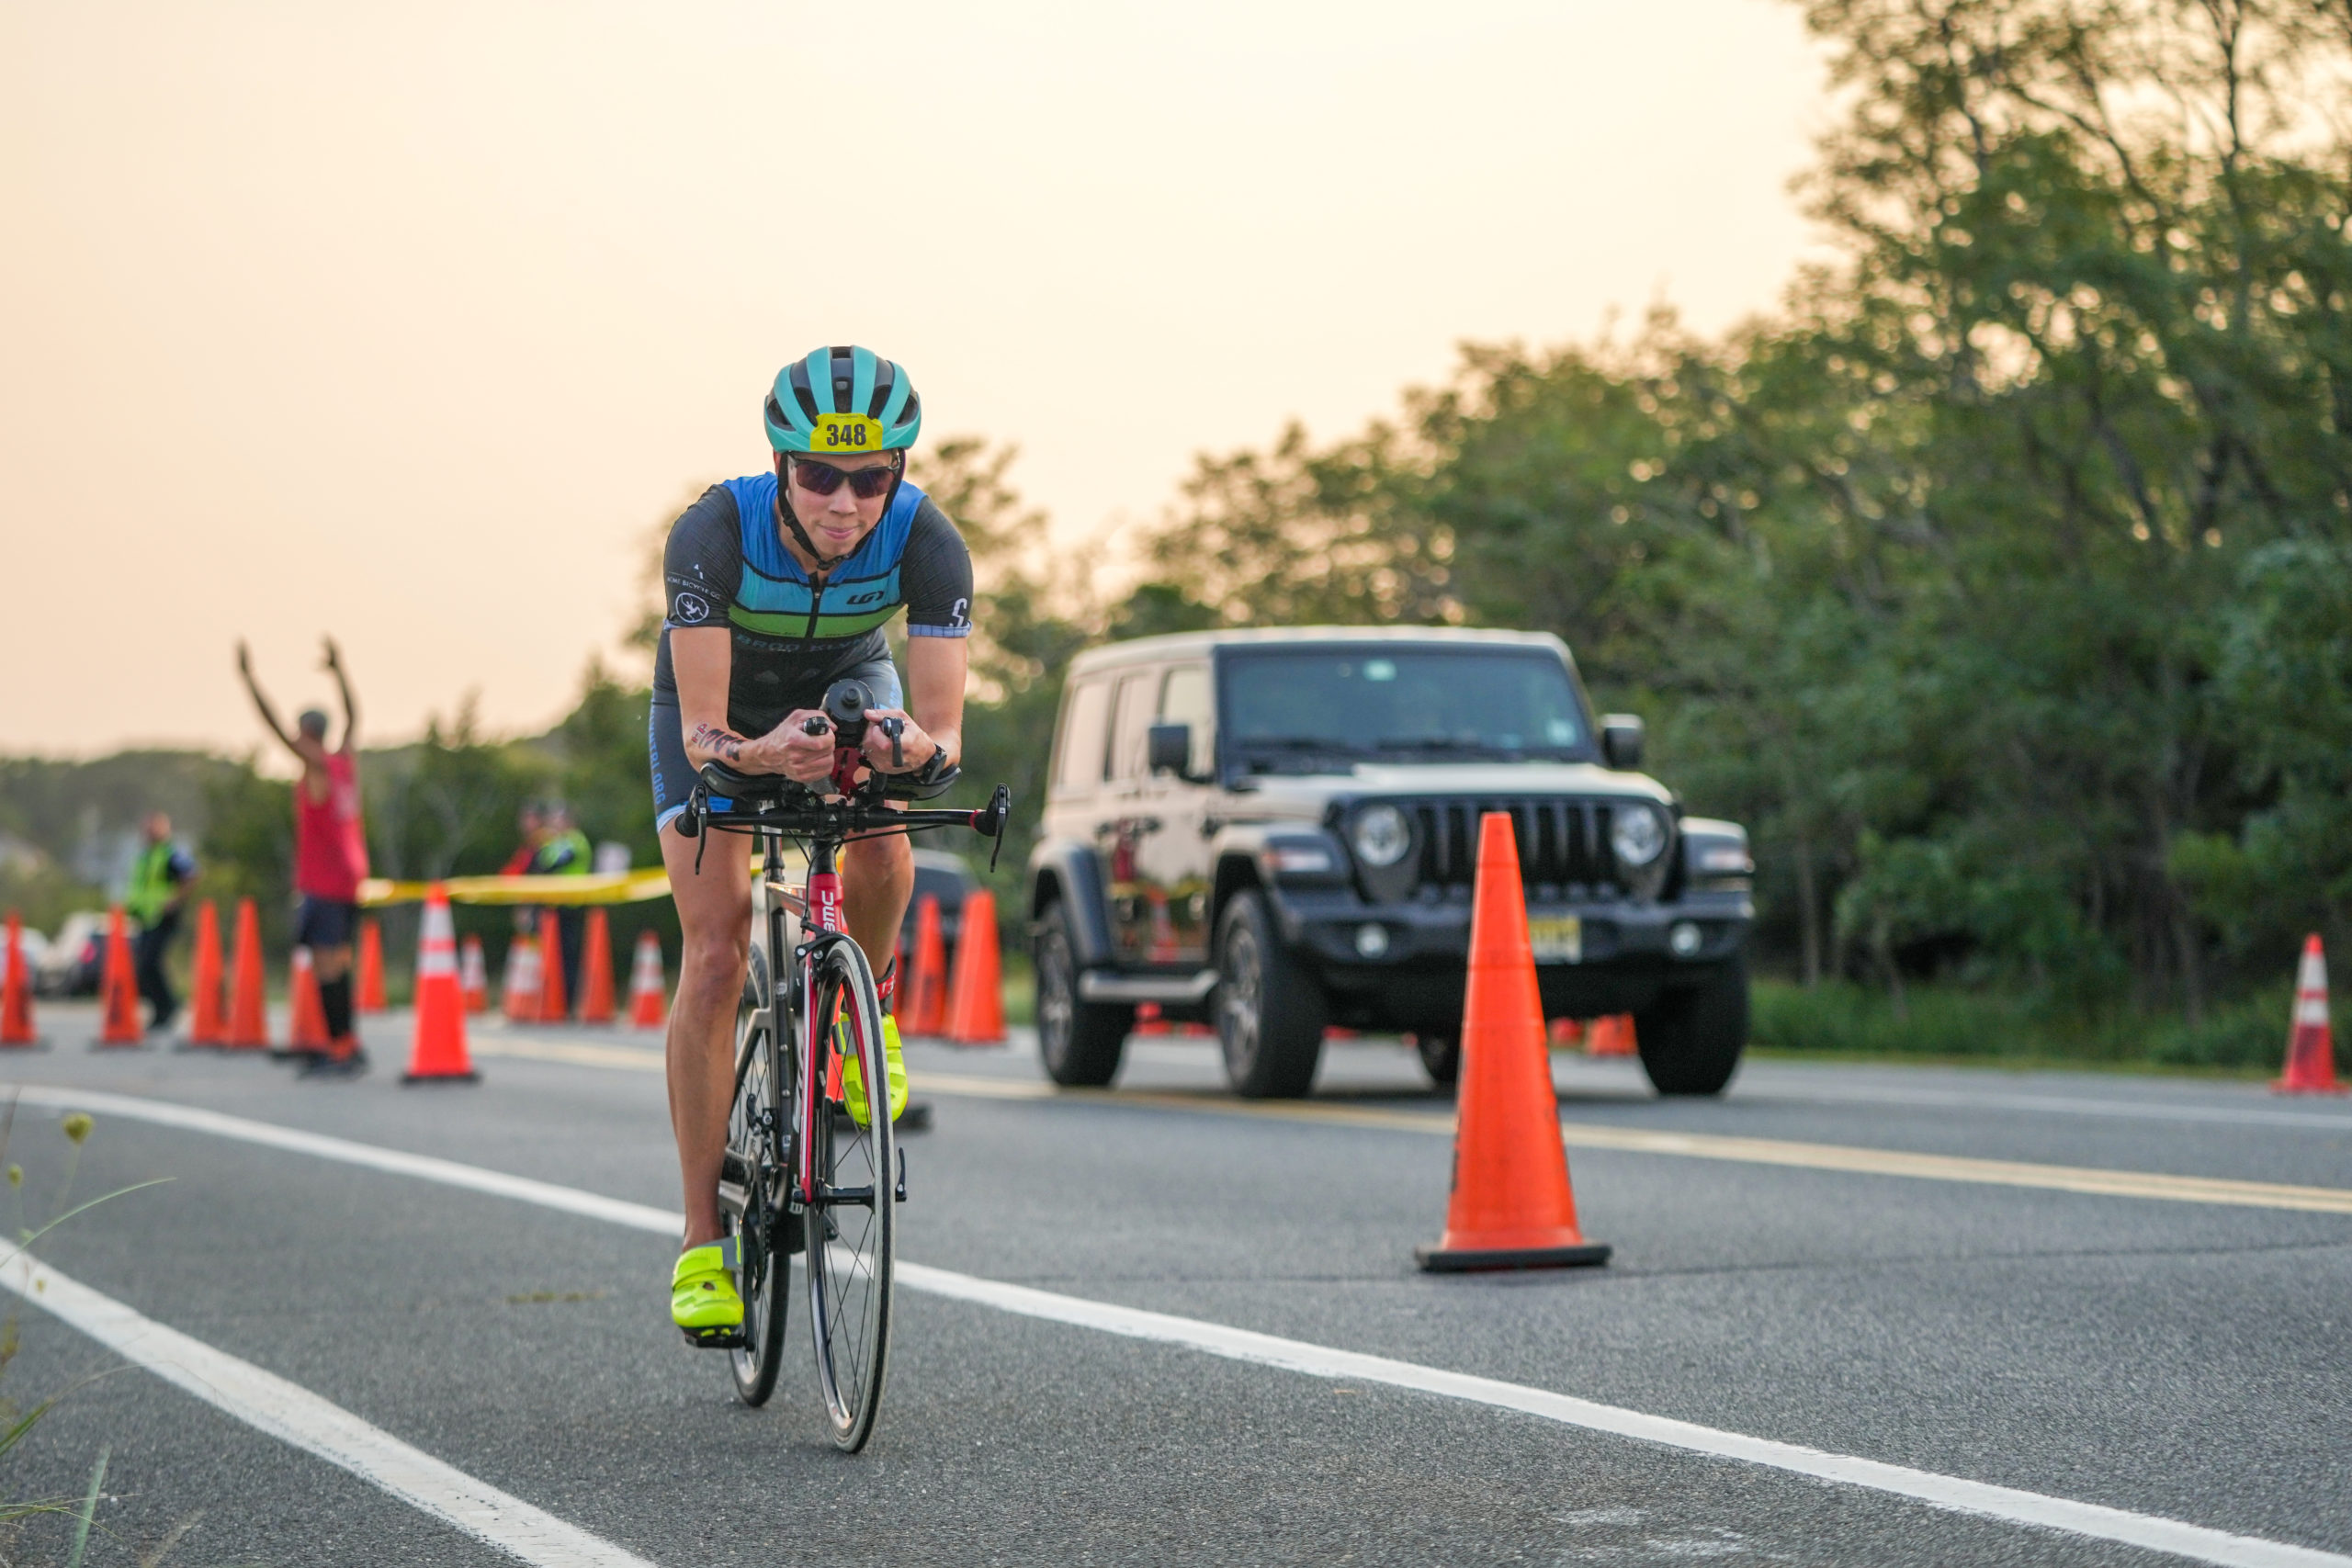 Anna Carlson rides by in the bike portion.